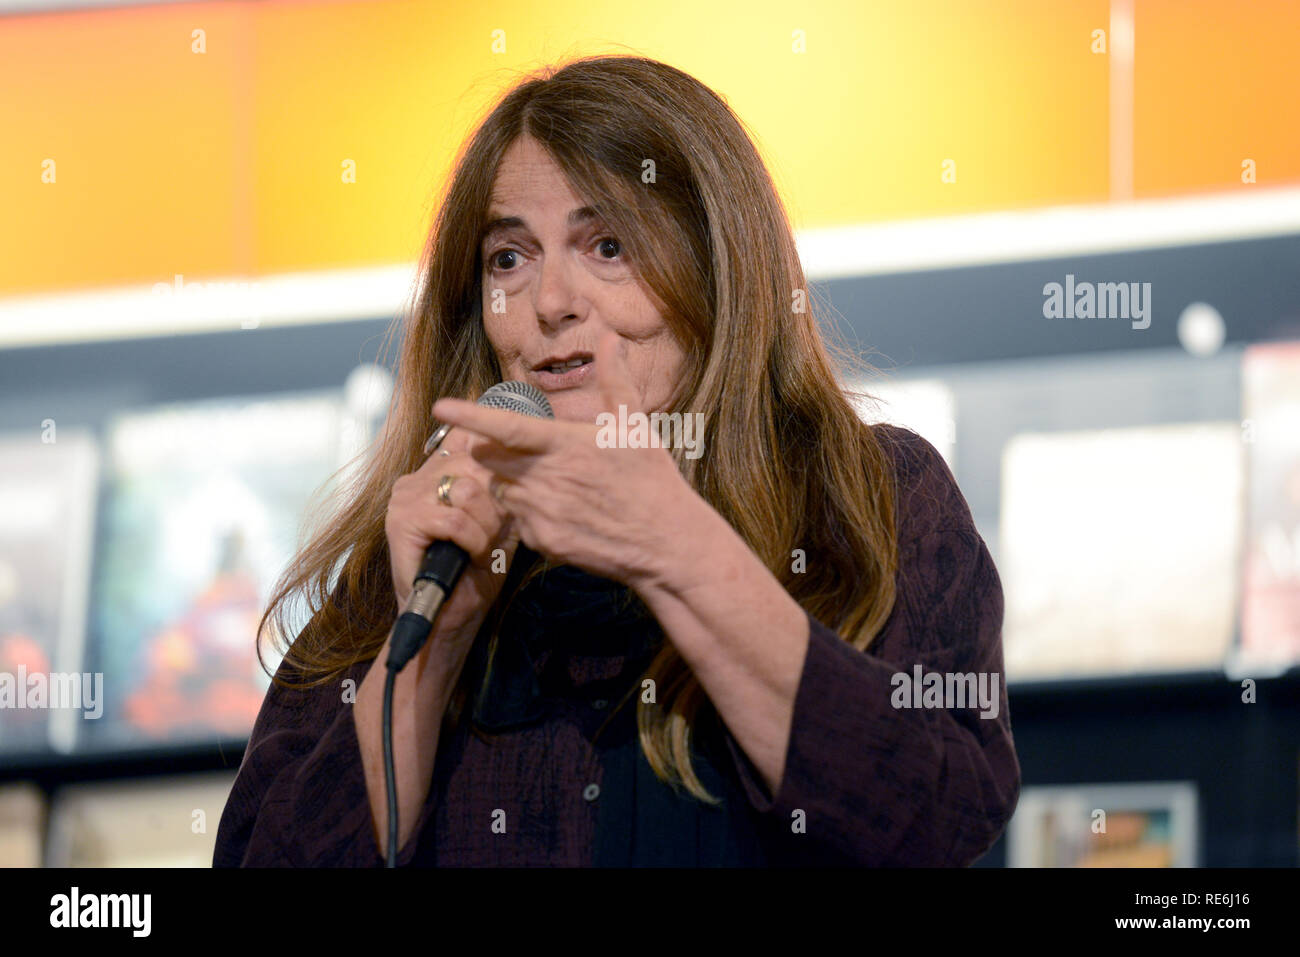 Rome, Italy. 19th Jan, 2019. ROME, at the Feltrinelli in Via Appia the singer Nada Malanima presents her latest album IS A DIFFICULT MOMENT, TREASURE Credit: Independent Photo Agency/Alamy Live News Stock Photo